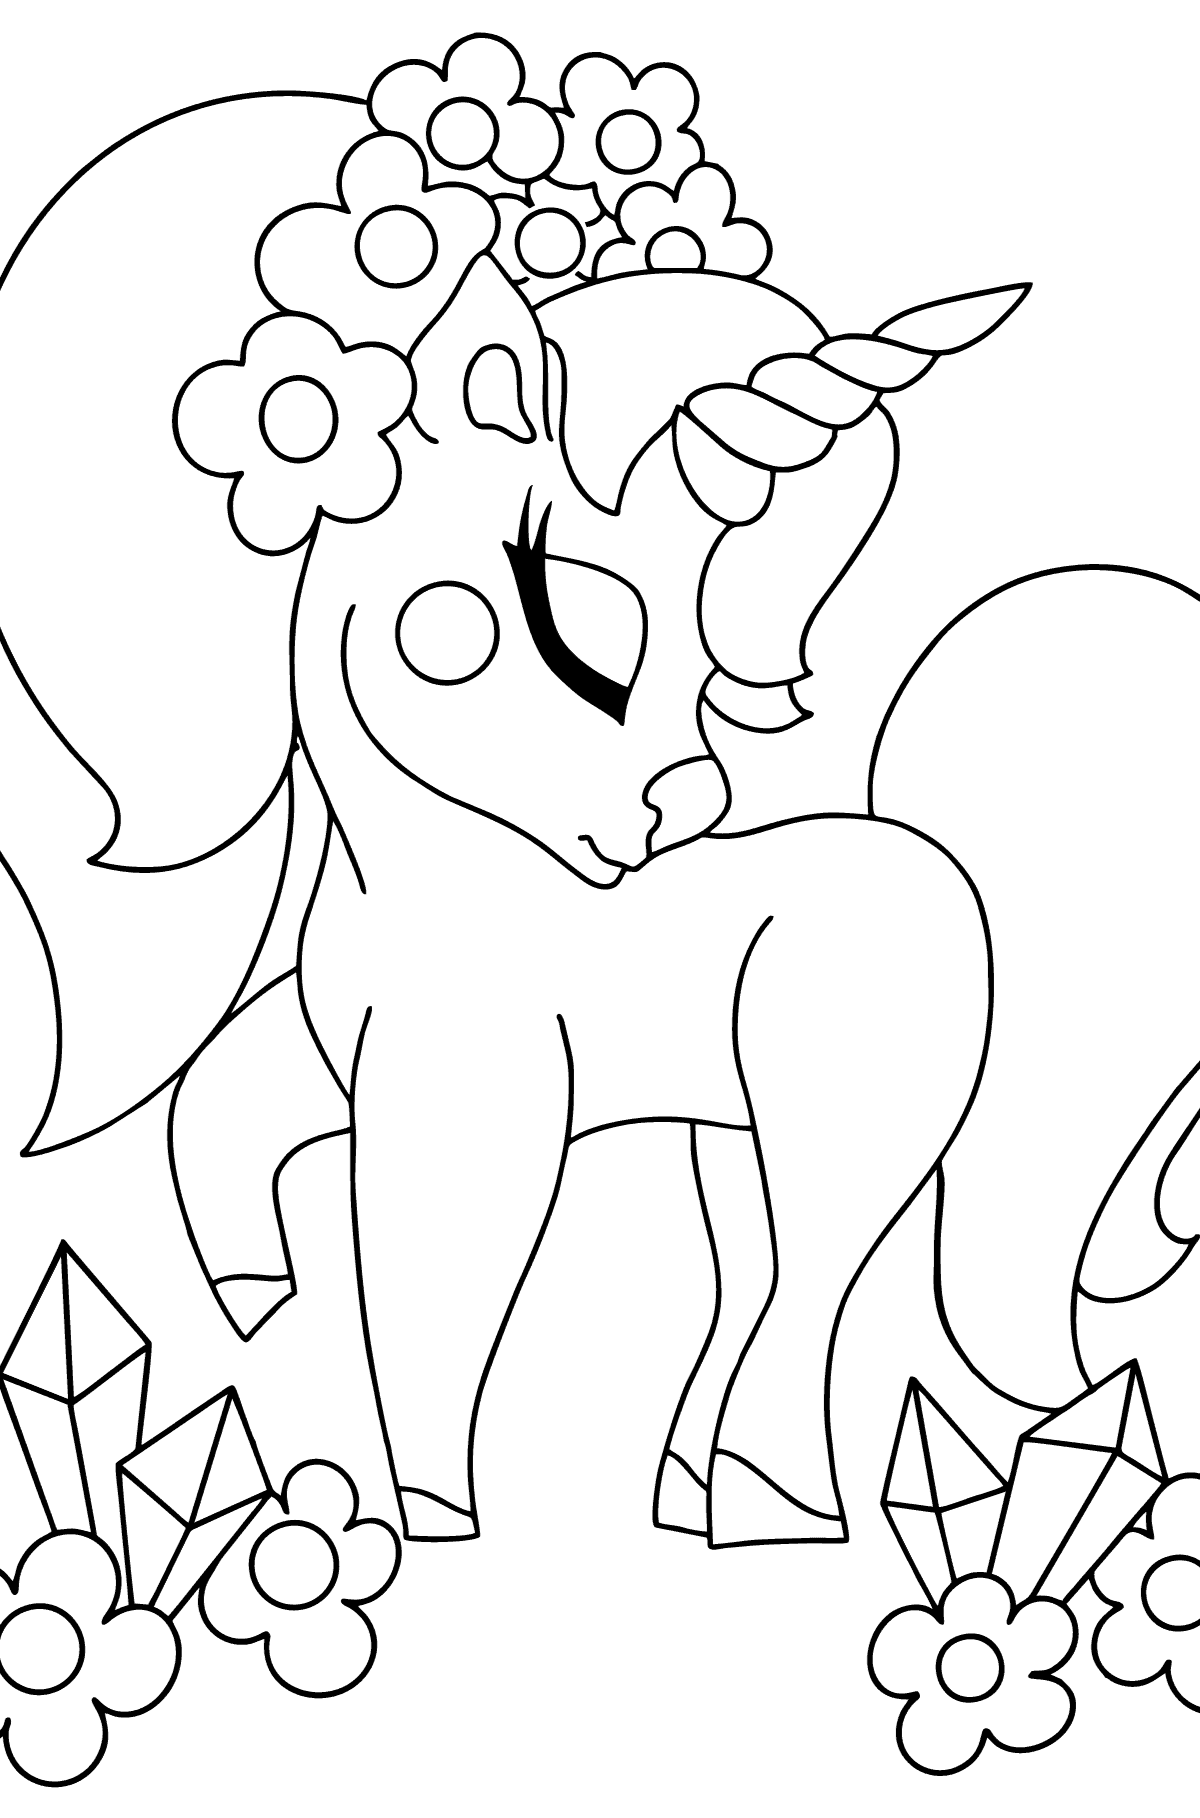 Complex Coloring Page - A Dreaming Unicorn for Kids